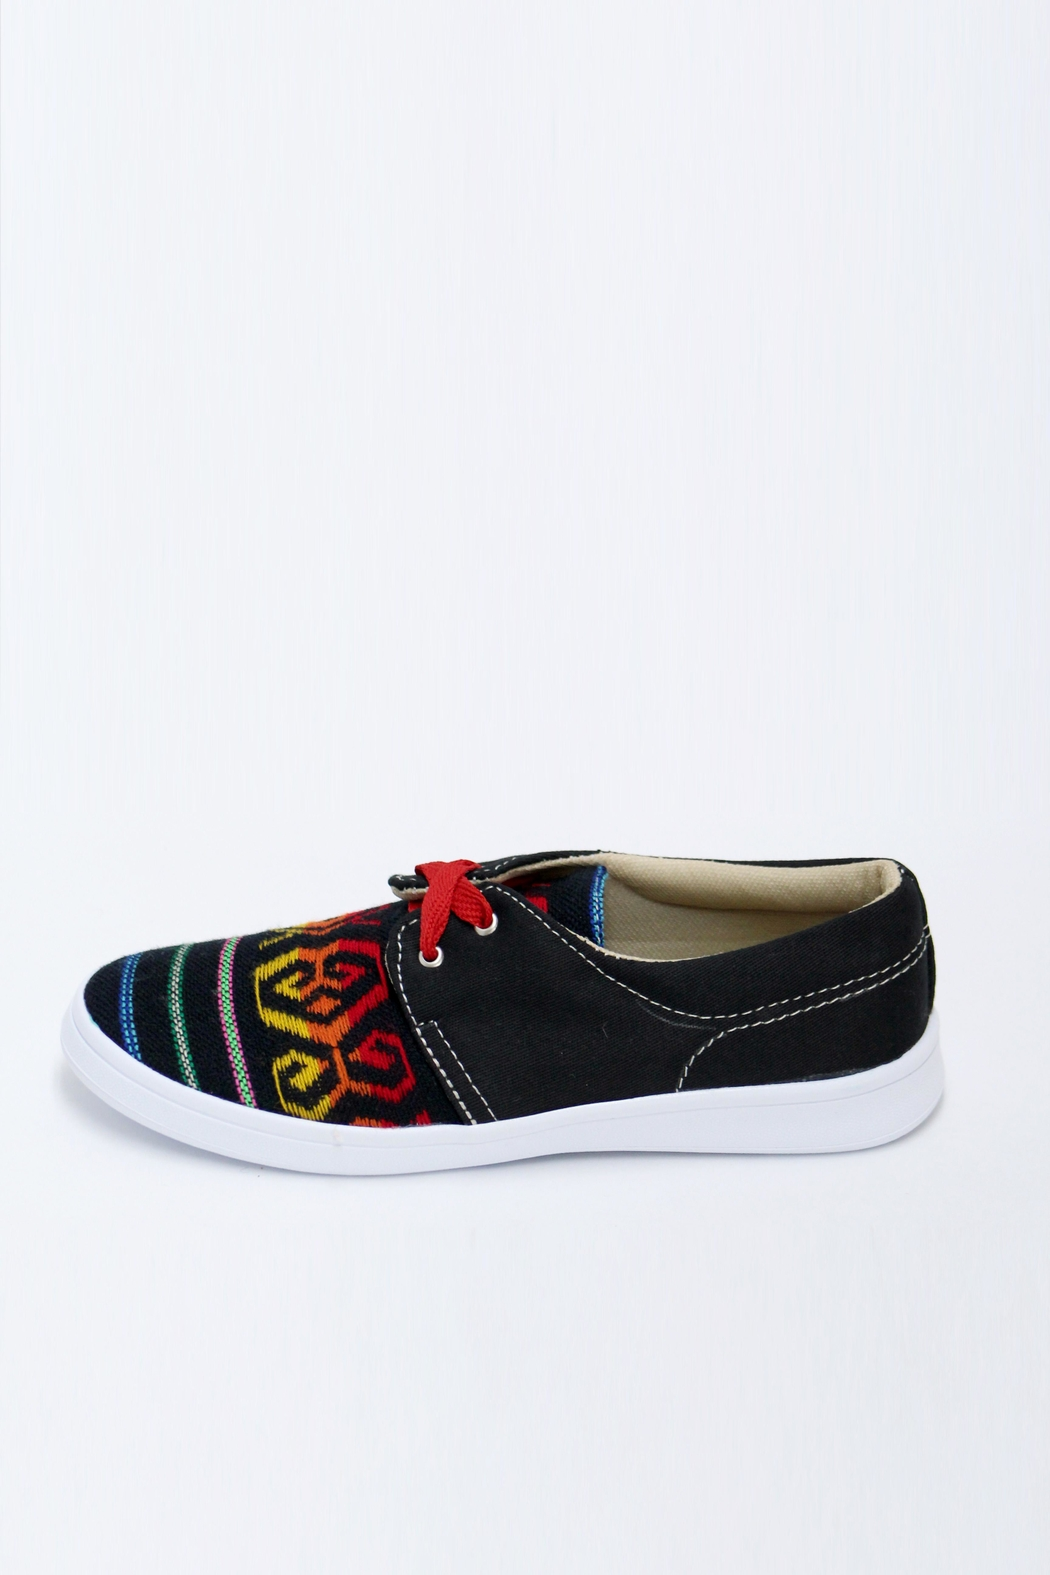 xinknal Black Mexican Sneakers - Side Cropped Image